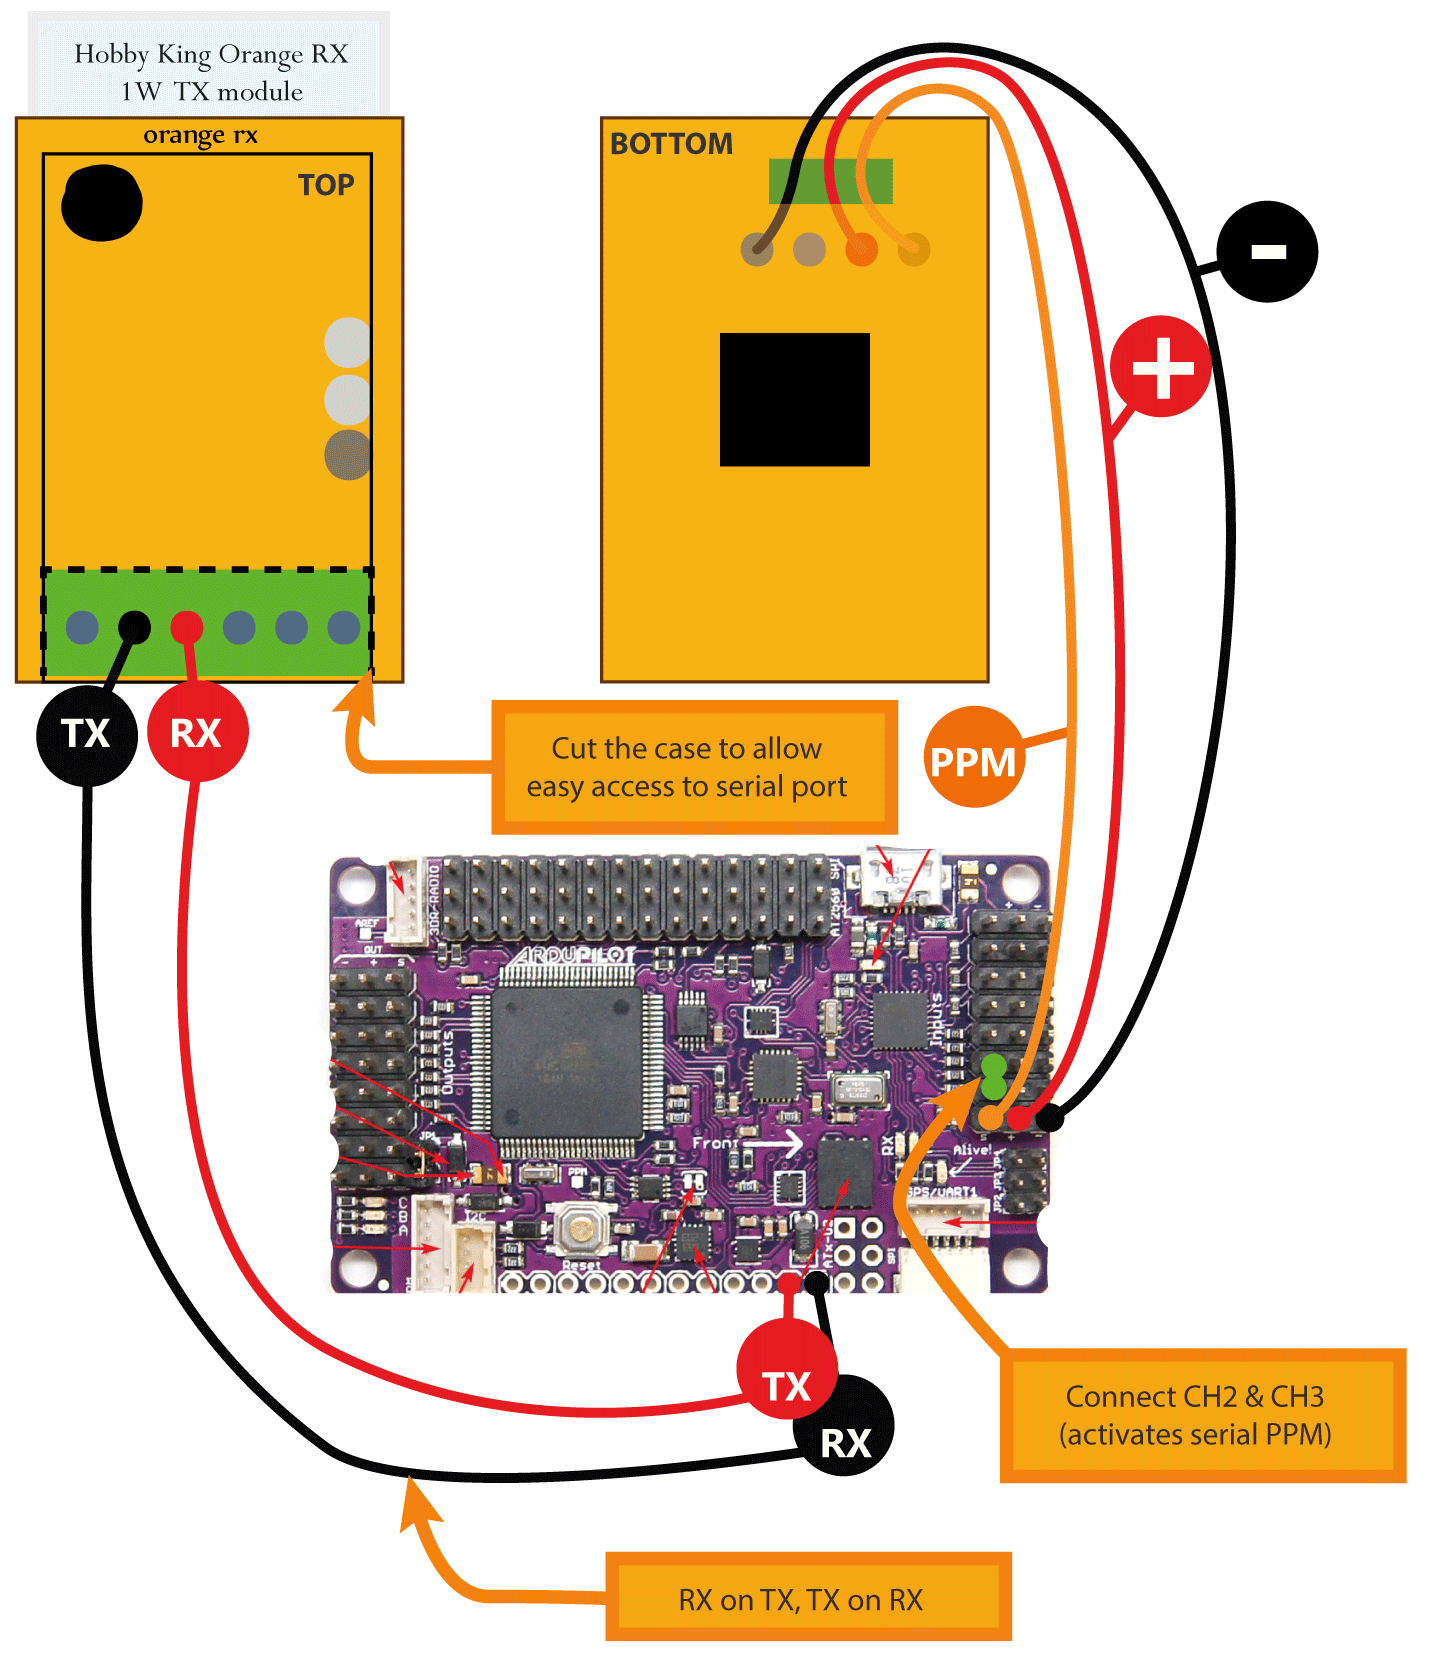 Taranis X8r Cc3d Wiring Diagram Explained Diagrams Telemetry With Orange Rx Diy U2022